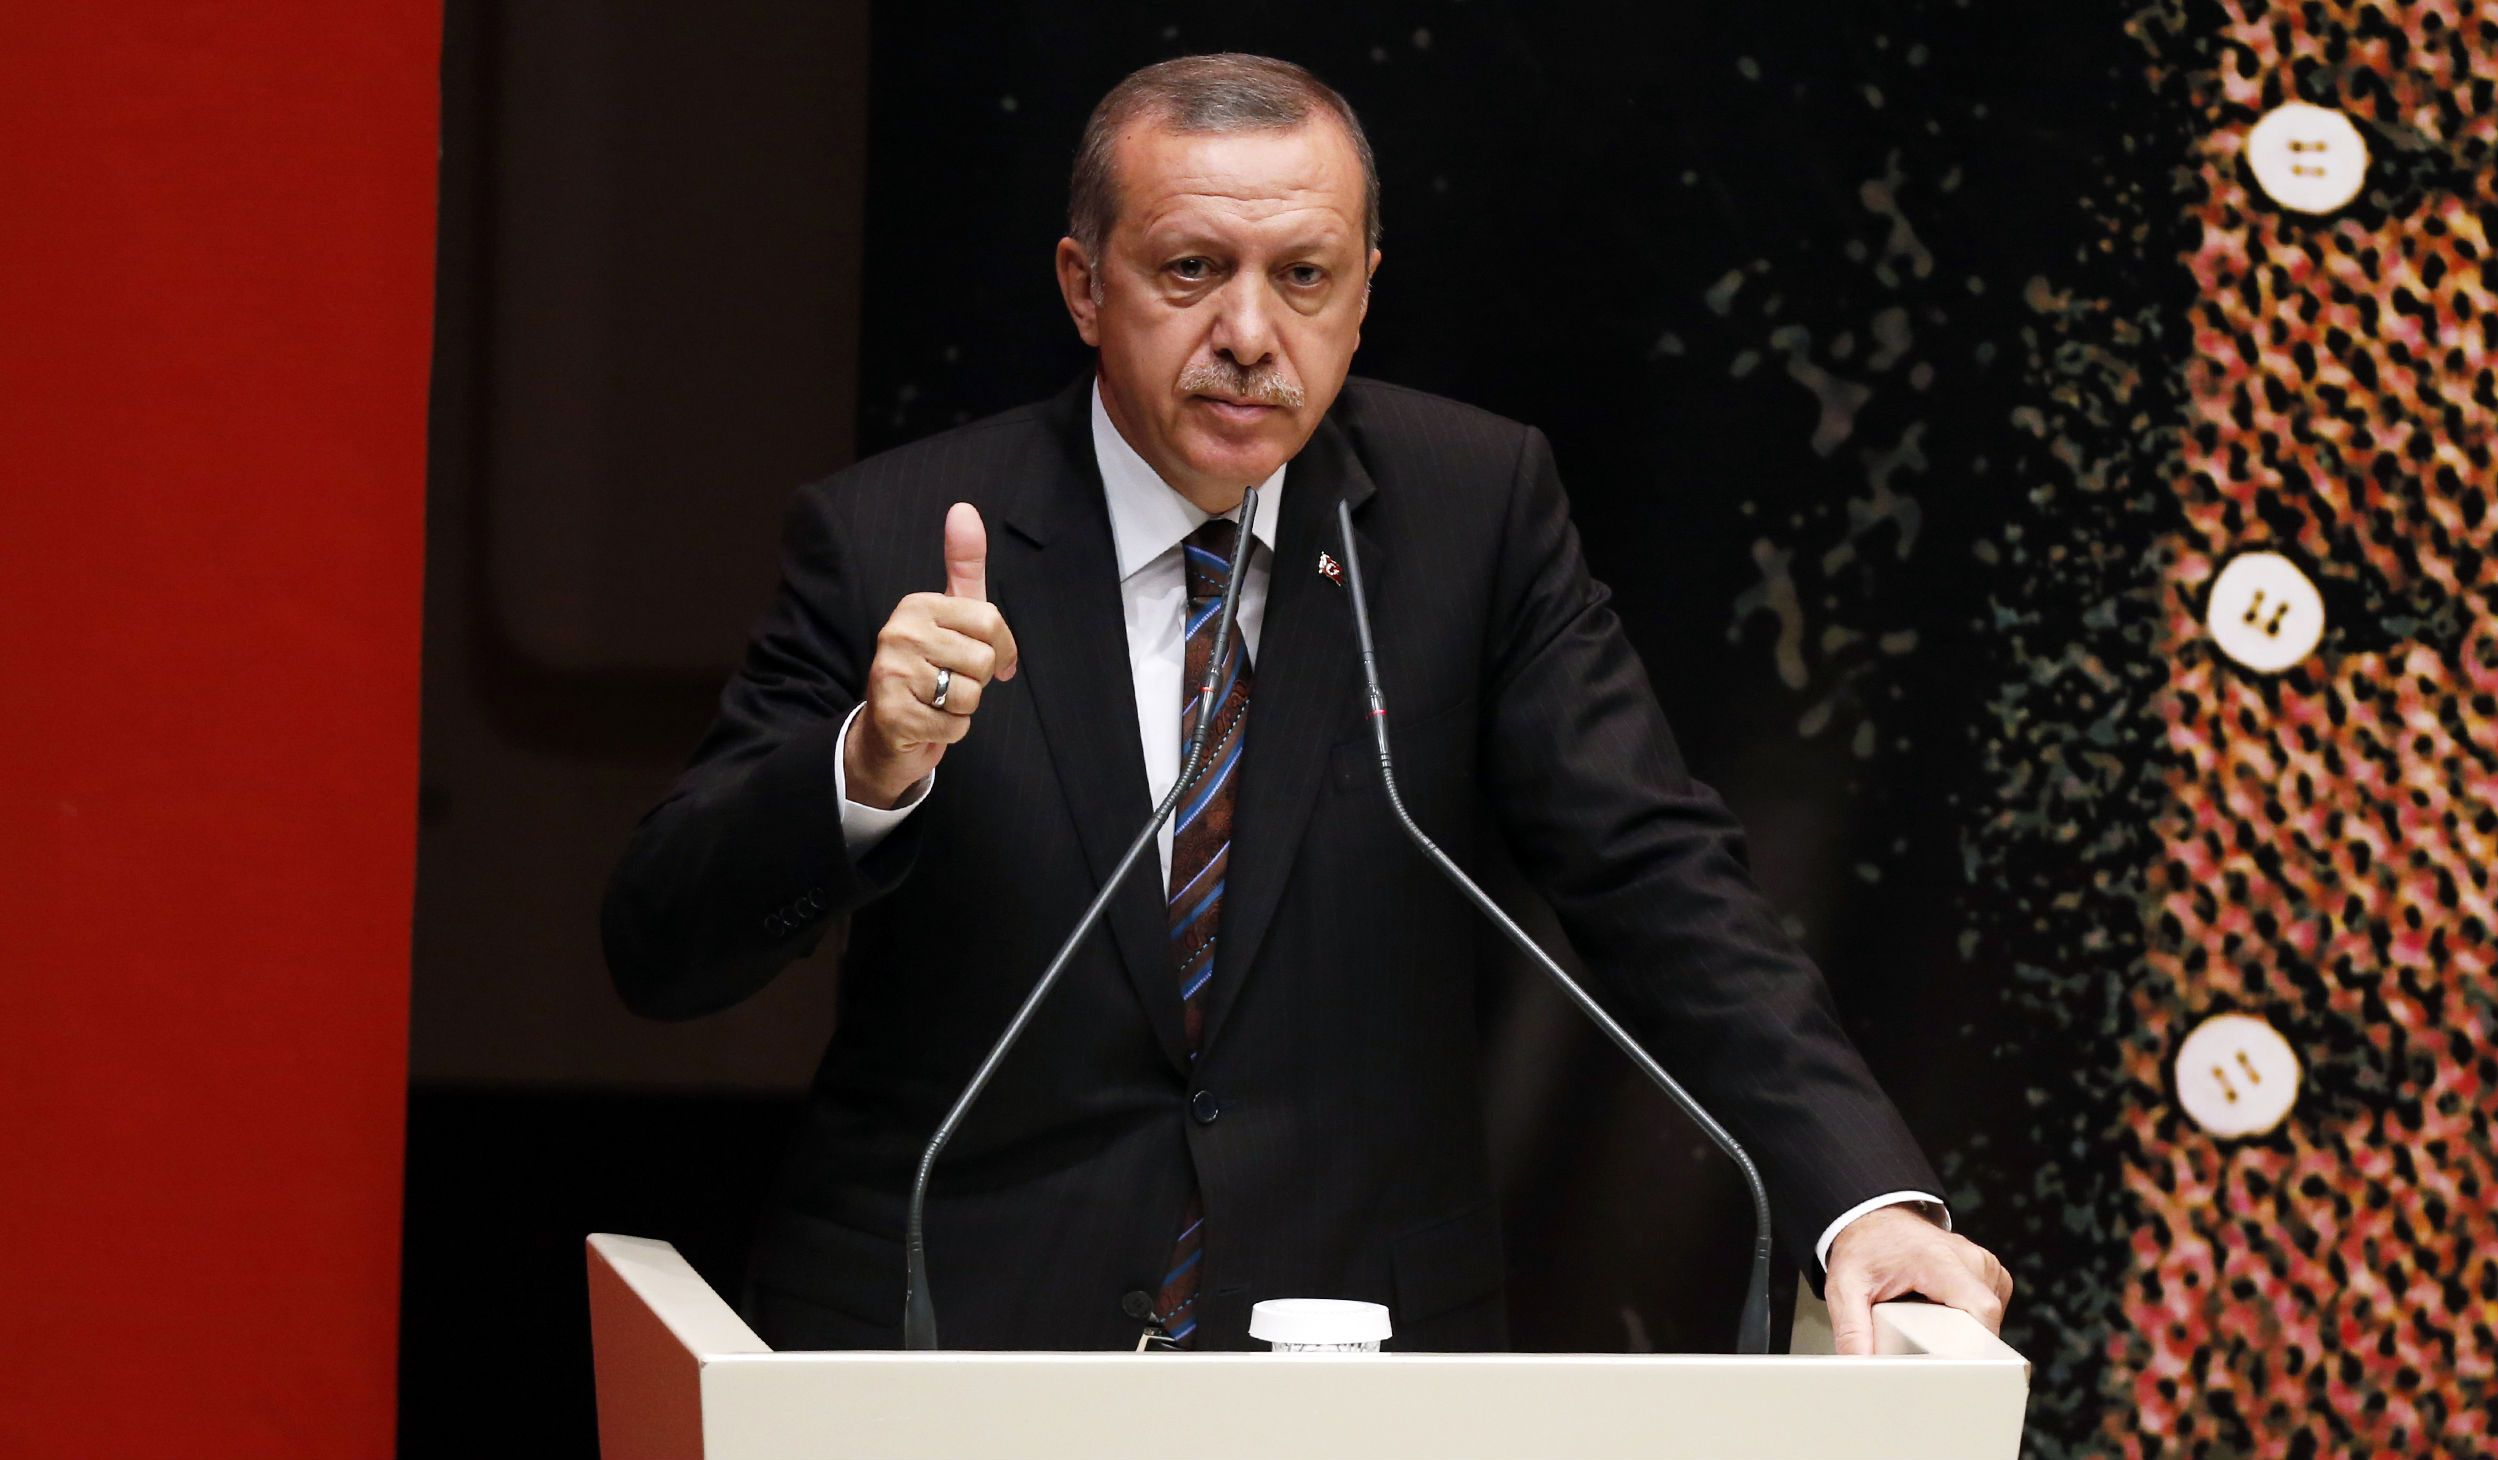 Erdogan thumbs up